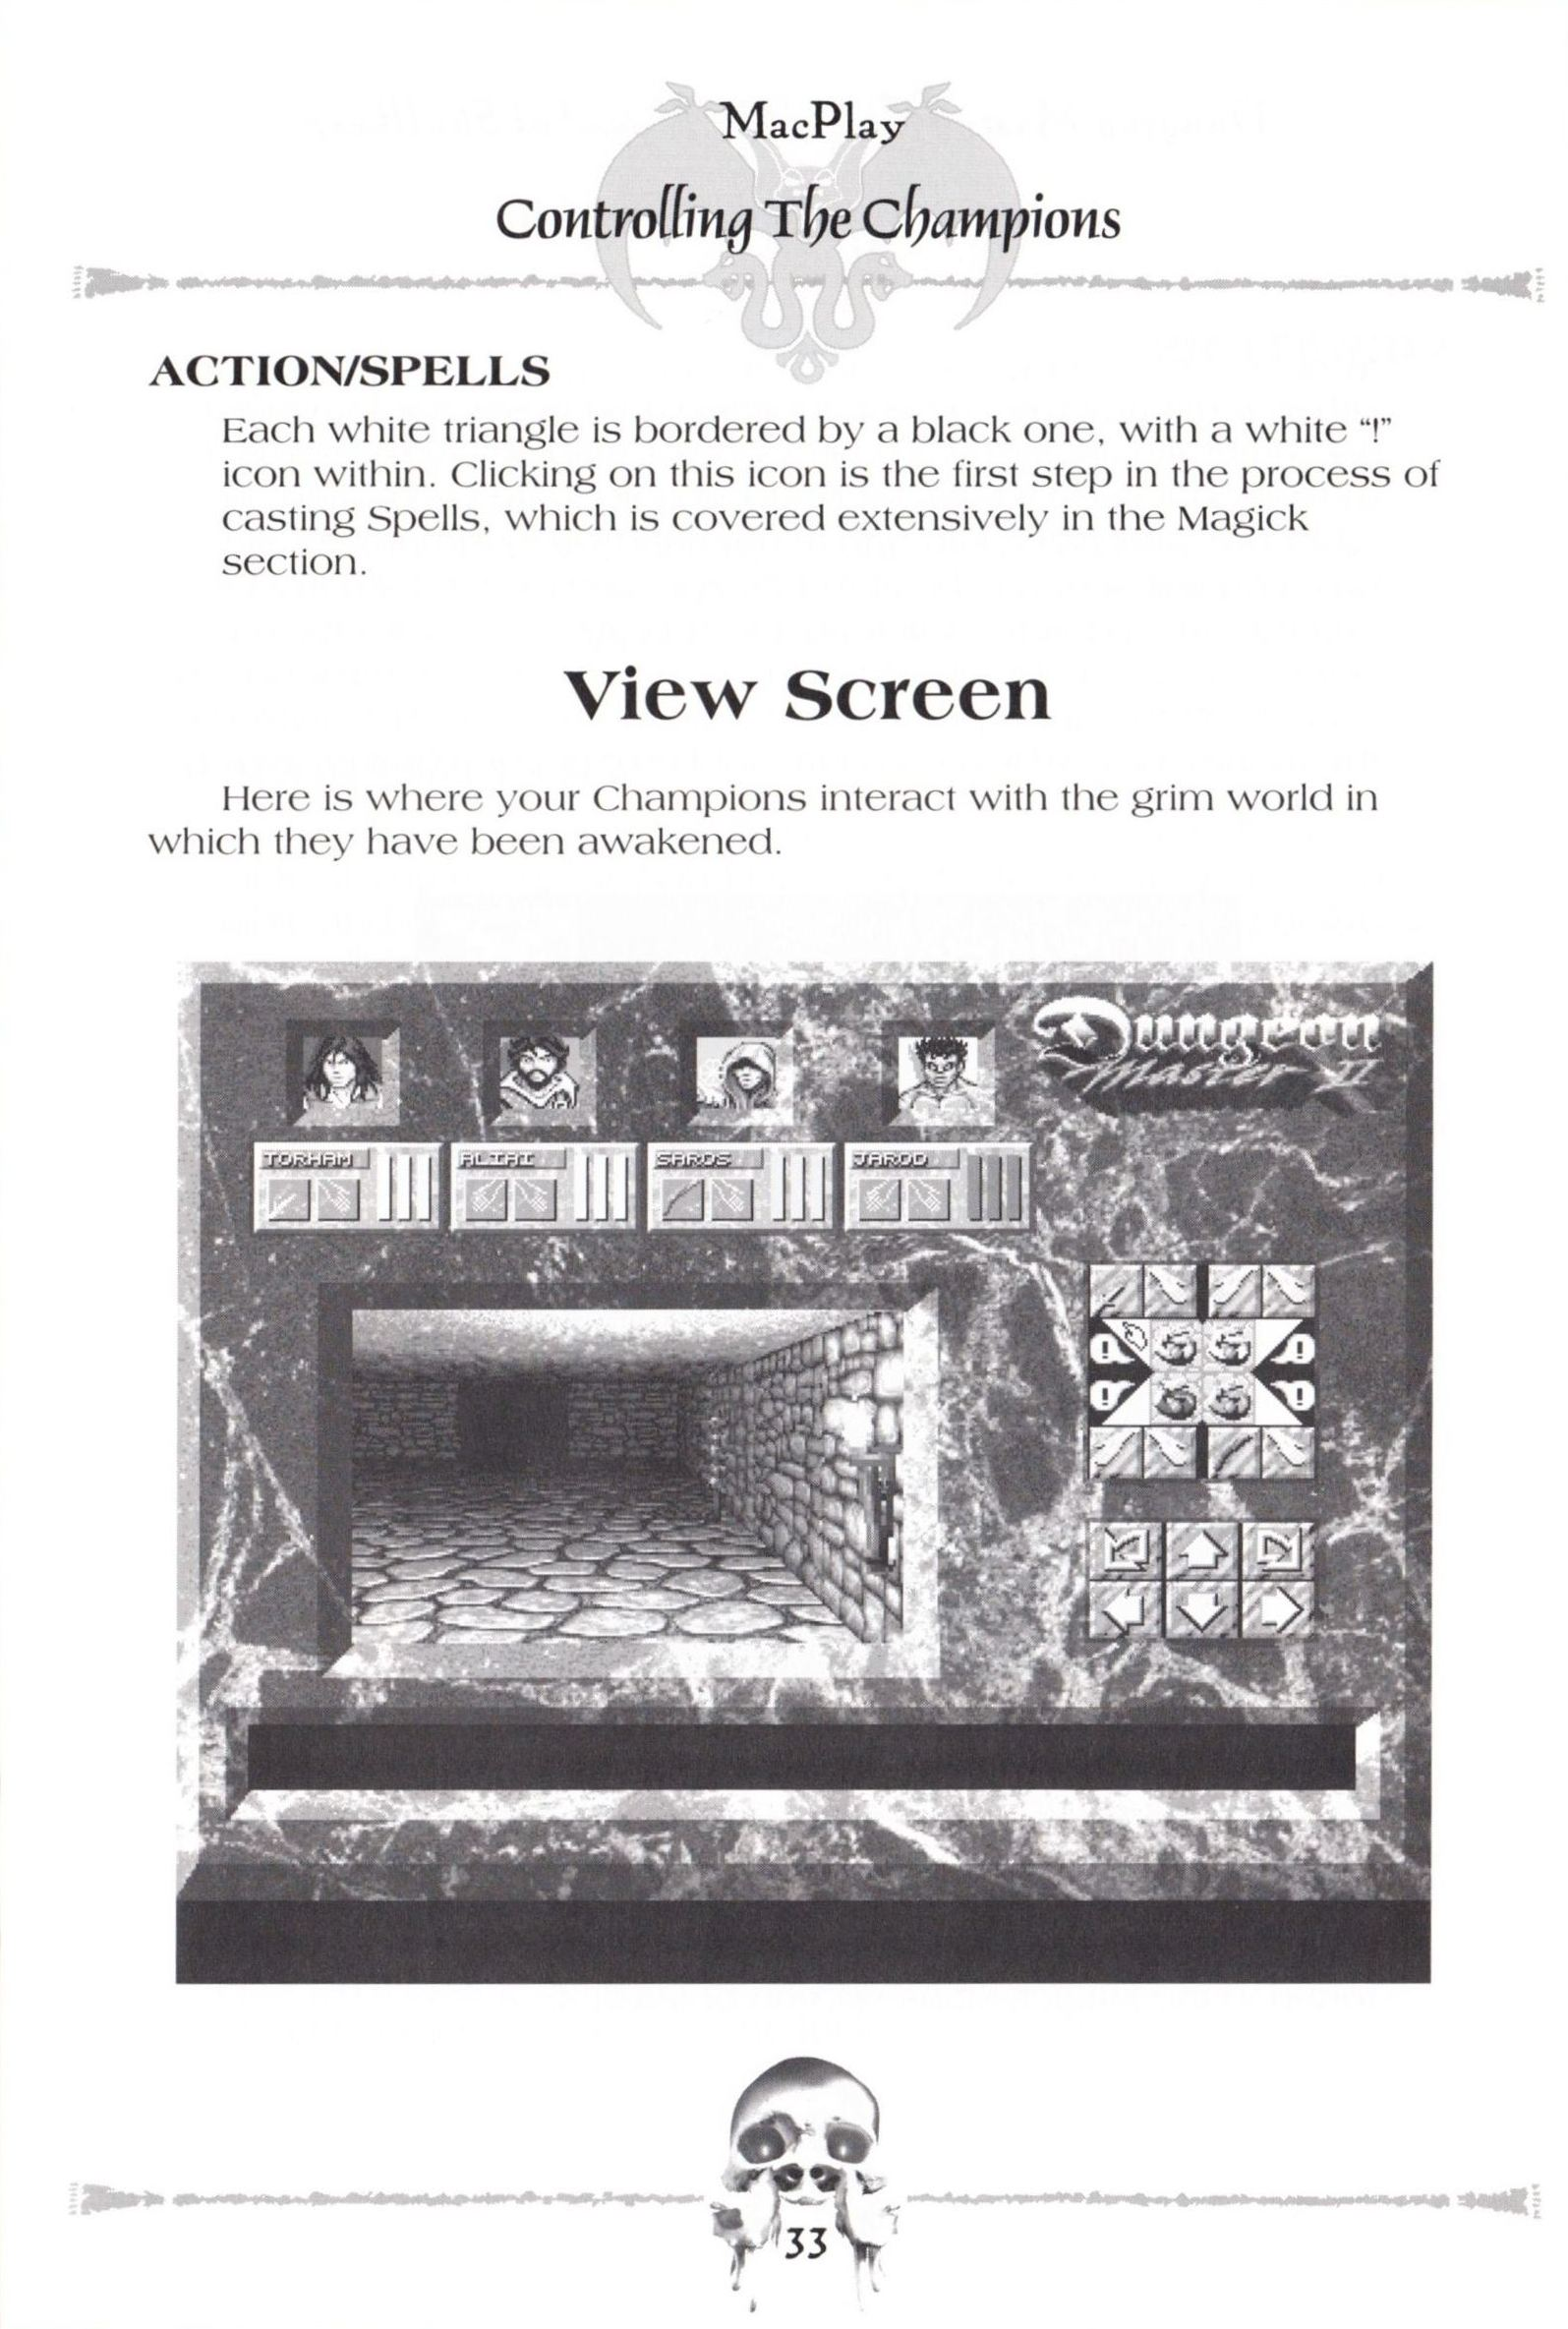 Game - Dungeon Master II - US - Macintosh - Manual - Page 035 - Scan